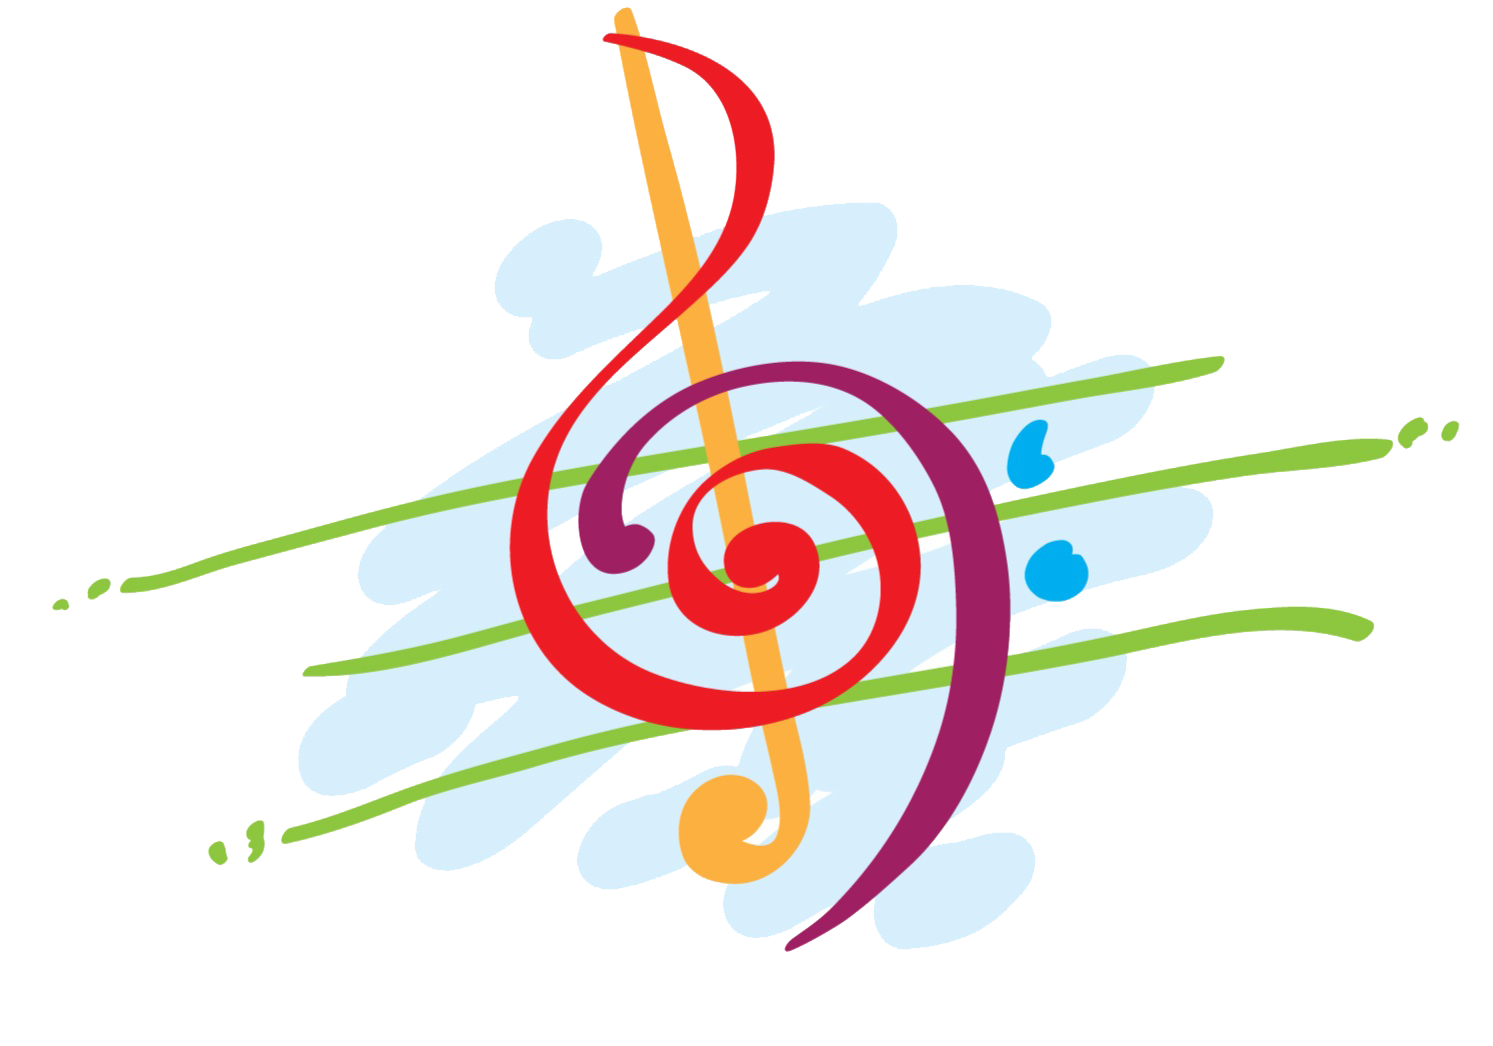 clipart images music - photo #27